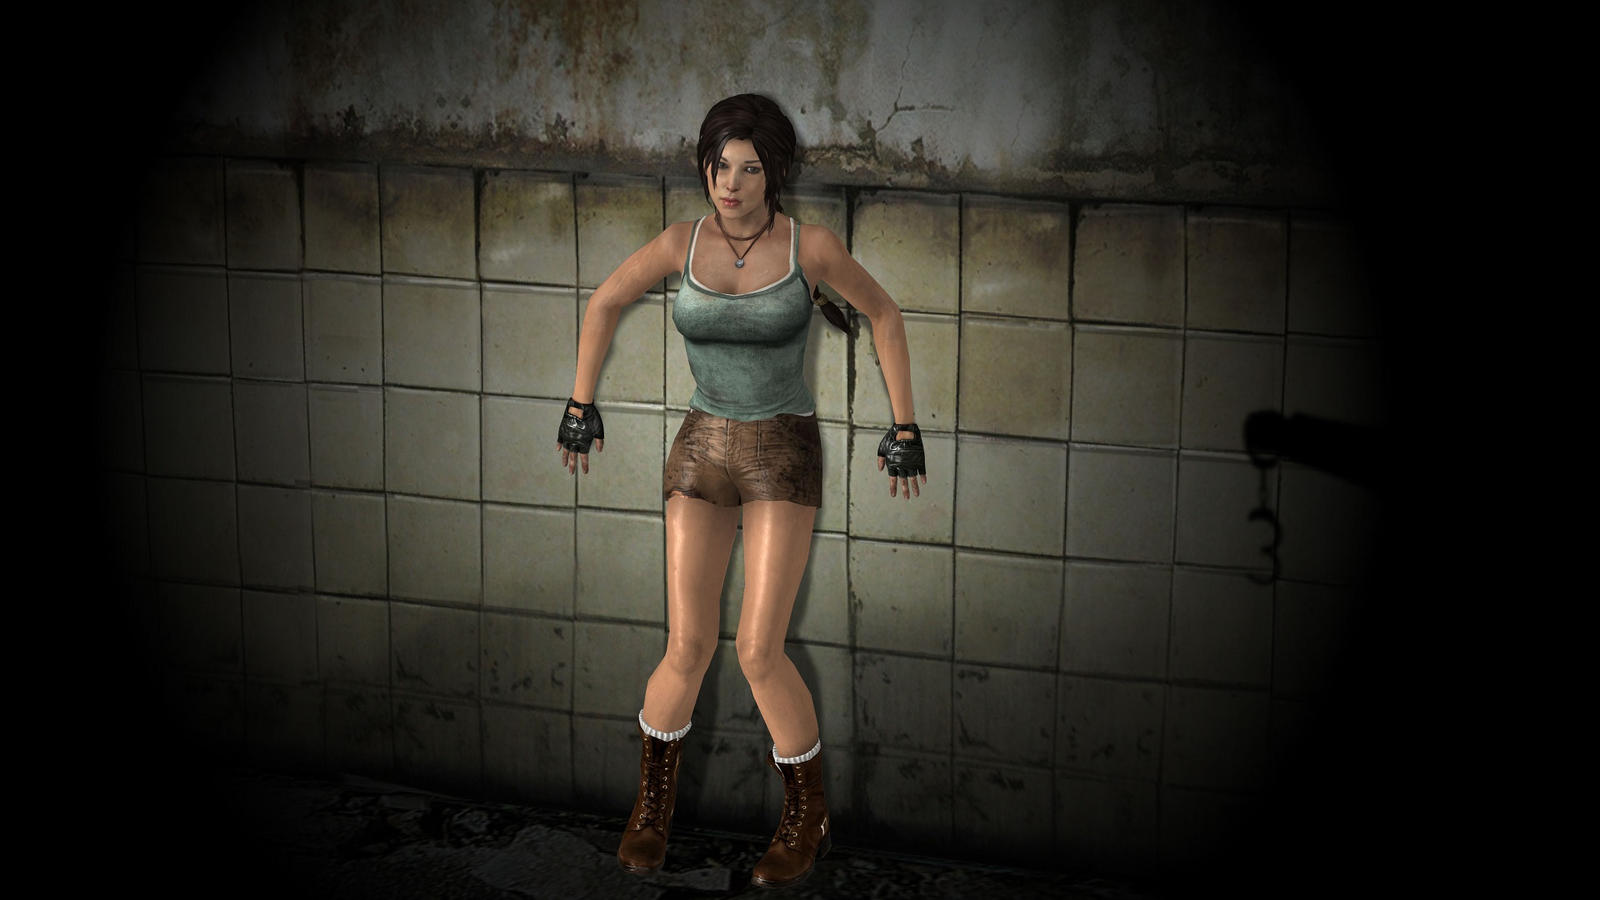 lara croft in trouble